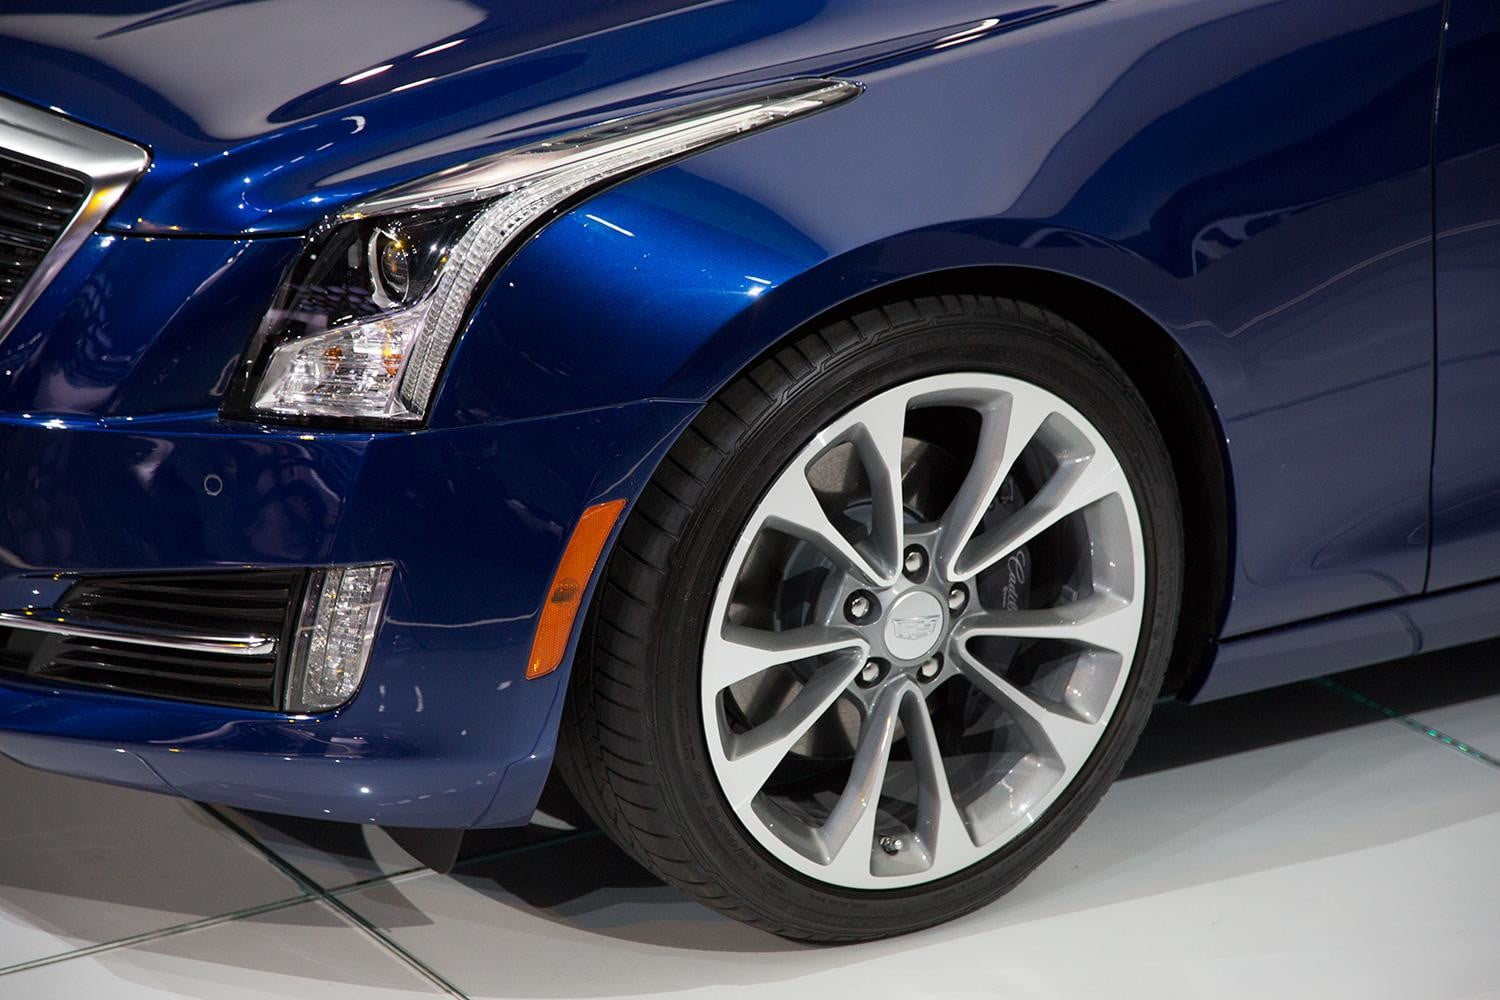 2015 Cadillac ATS Coupe front left macro